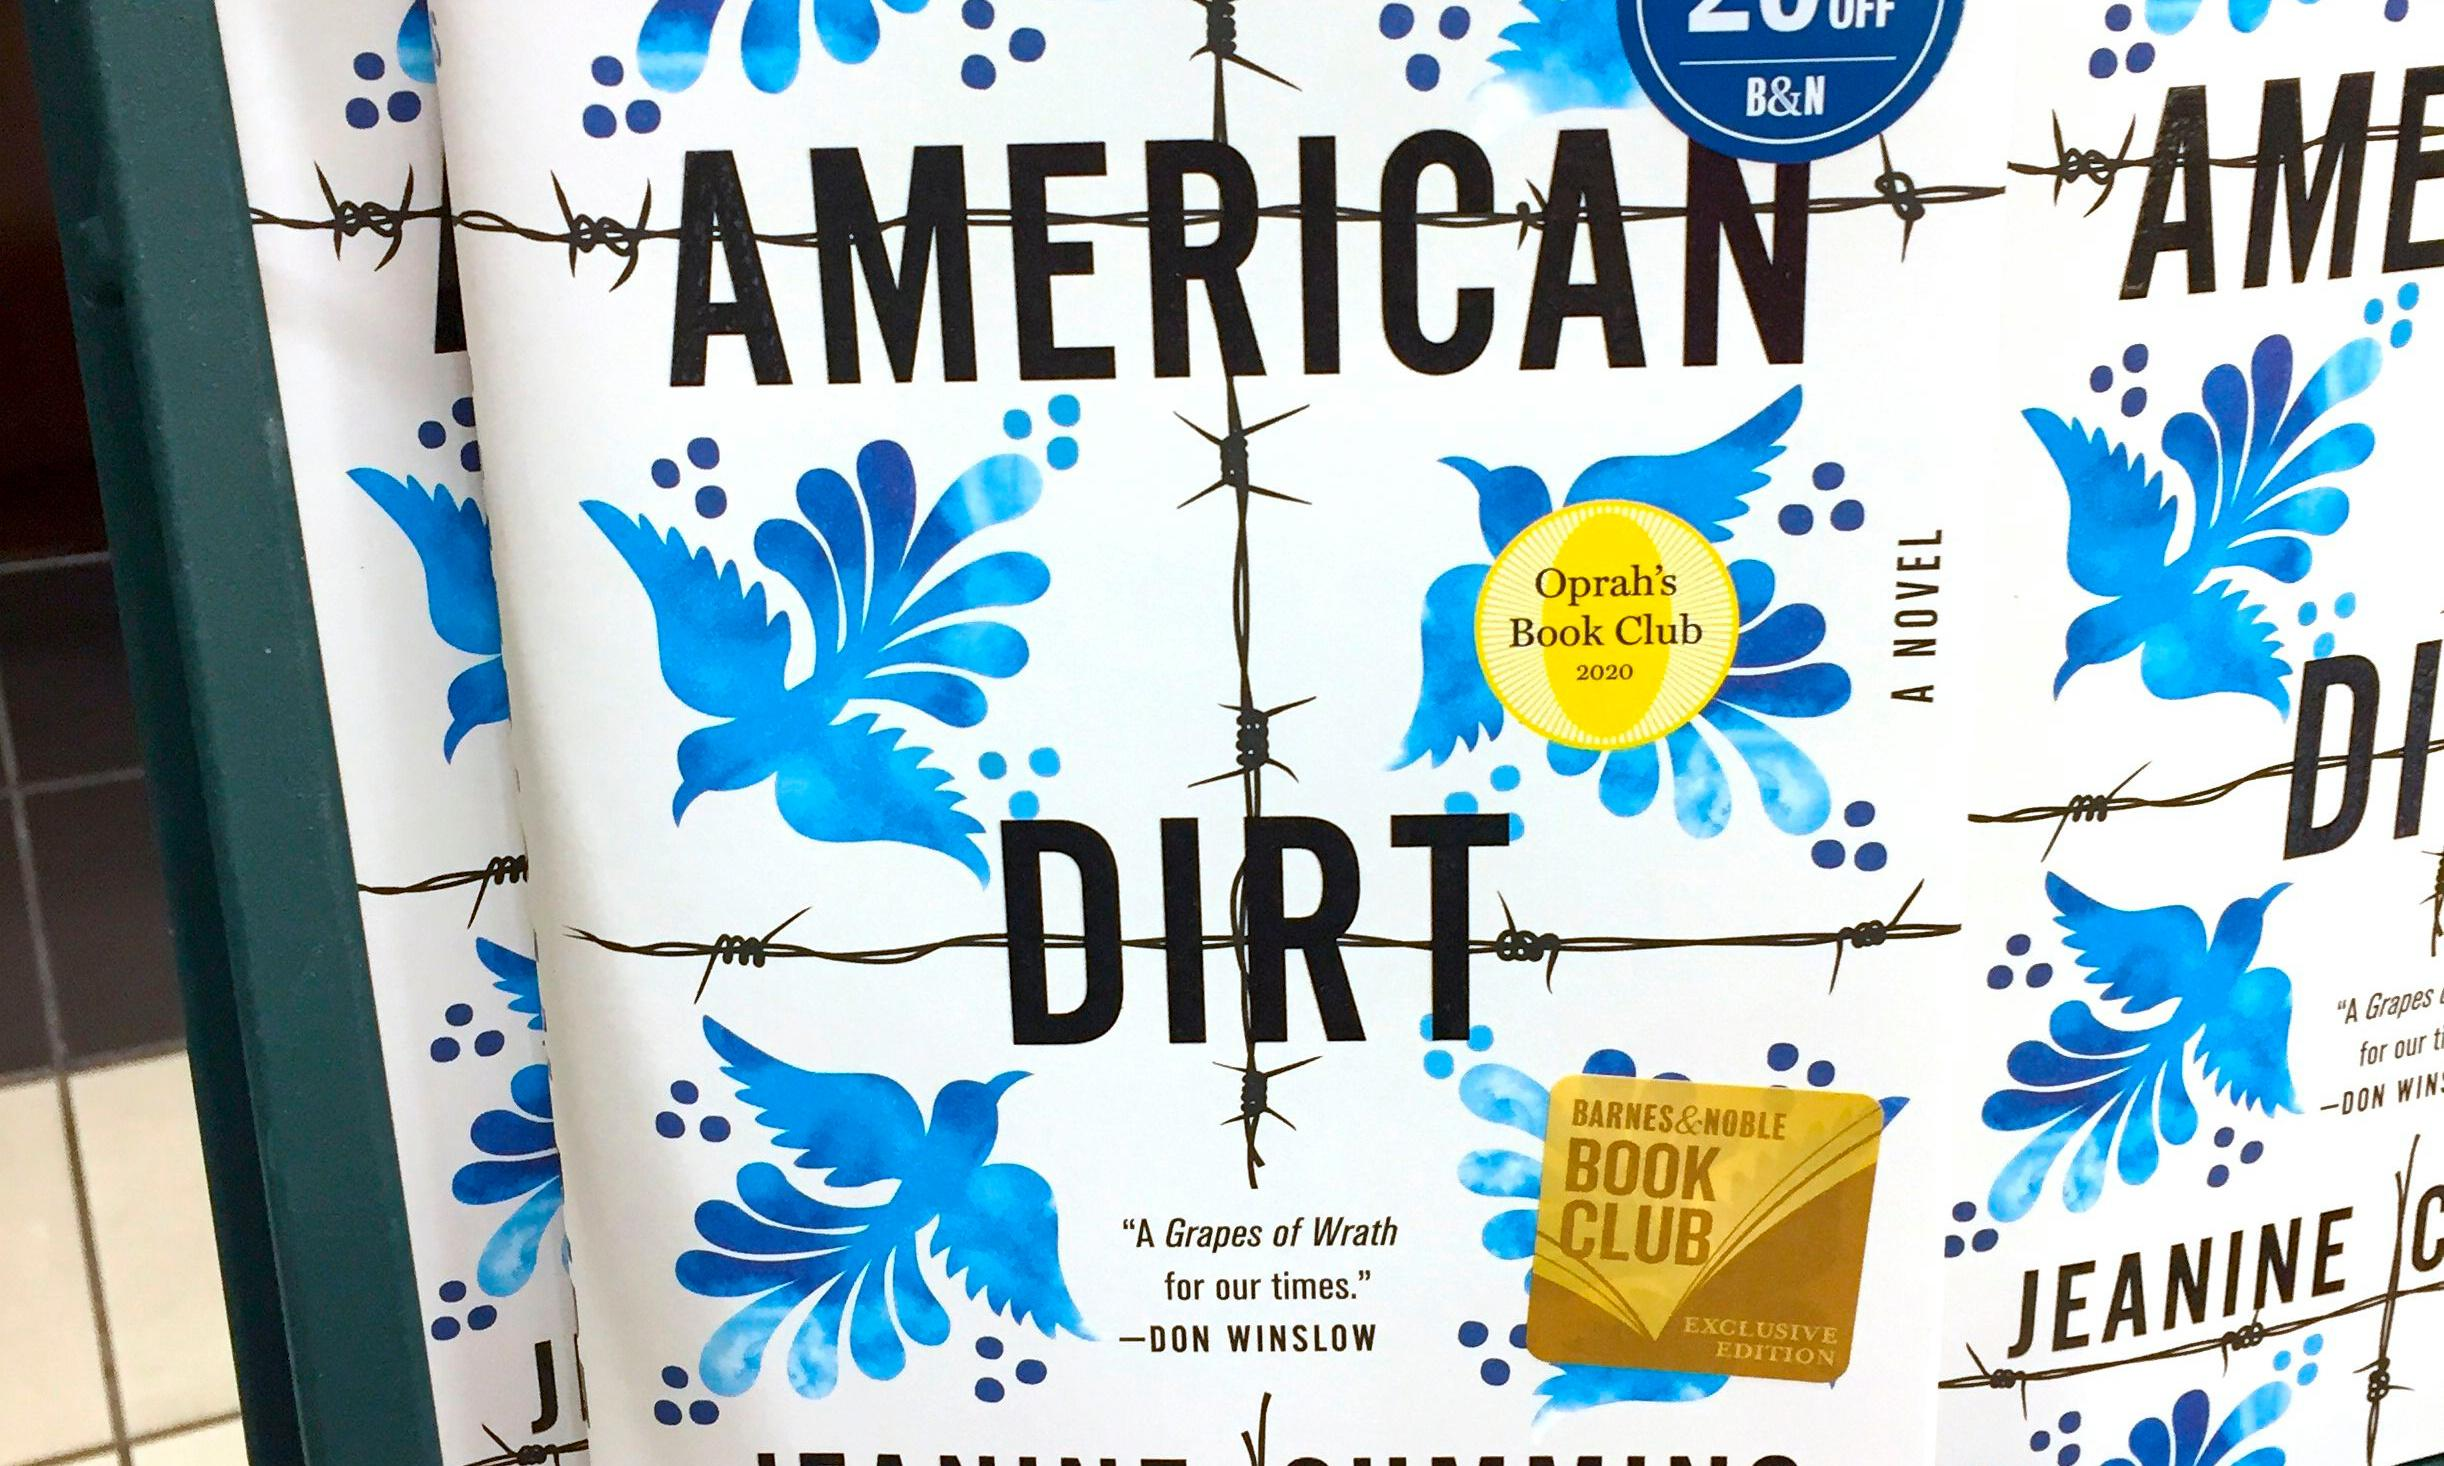 'It's unprecedented': how bookstores are handling the American Dirt controversy